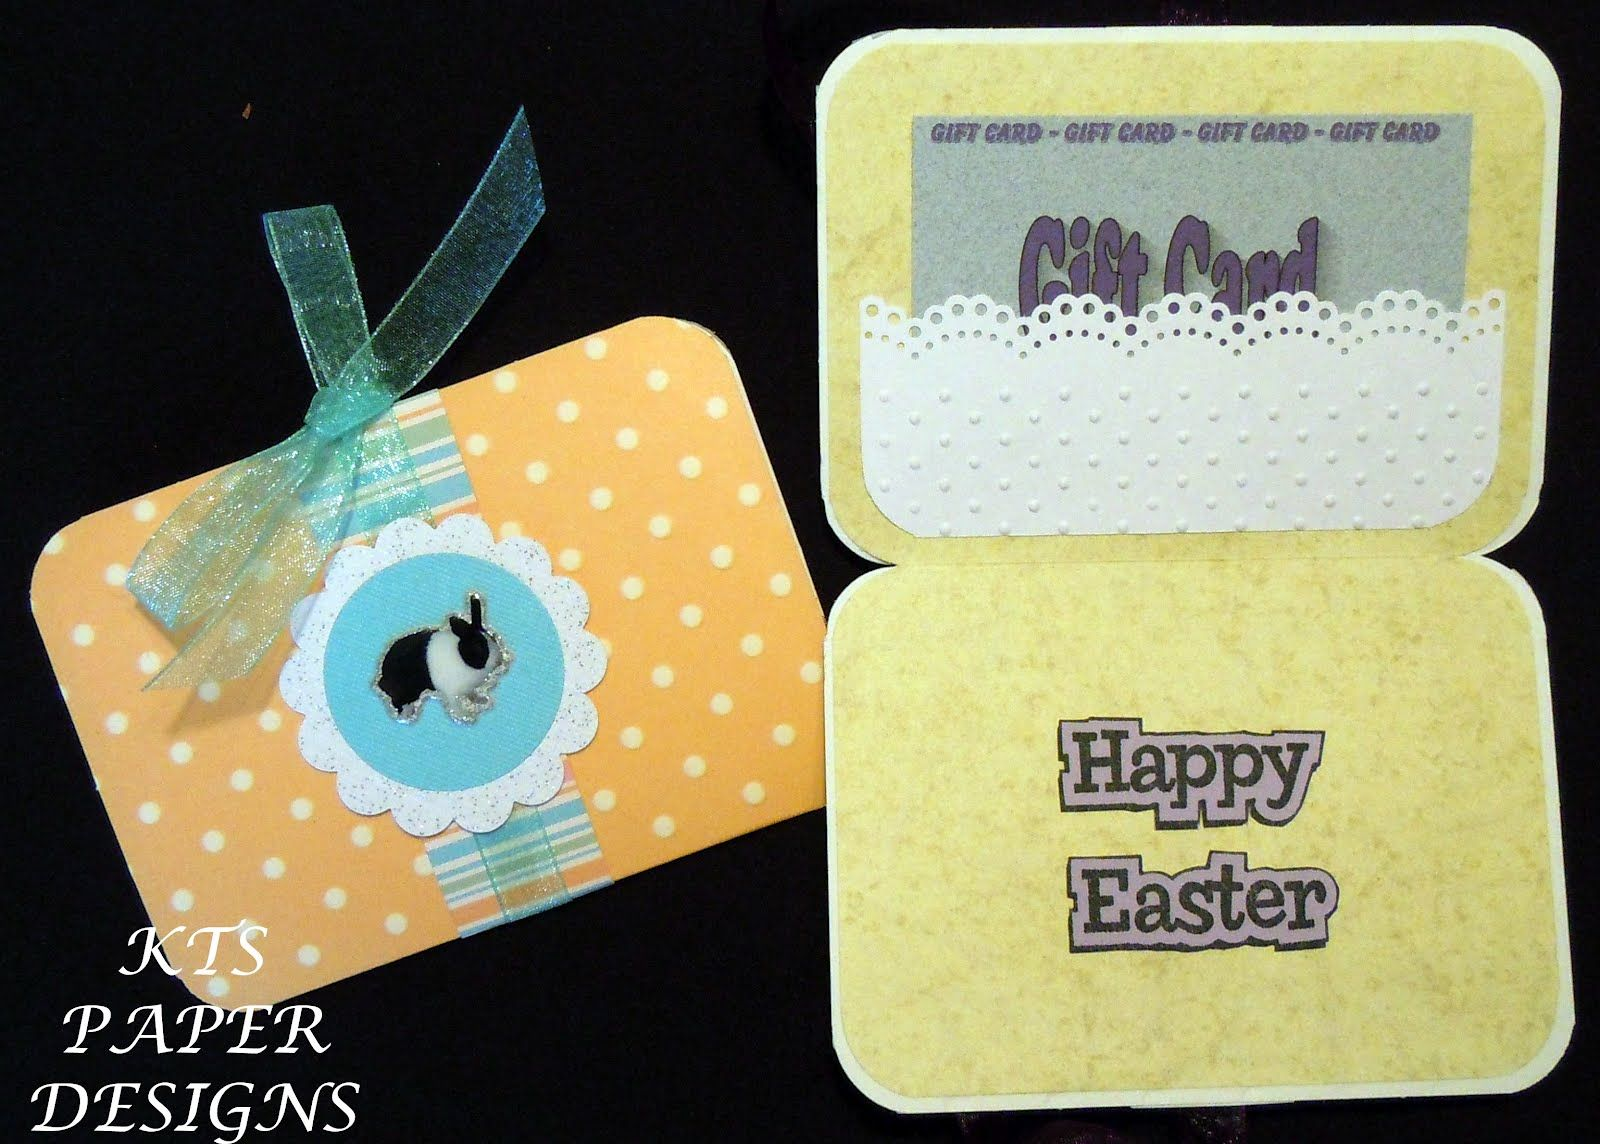 Kts paper designs fold open easter gift card holders easter gift kts paper designs fold open easter gift card holders negle Choice Image